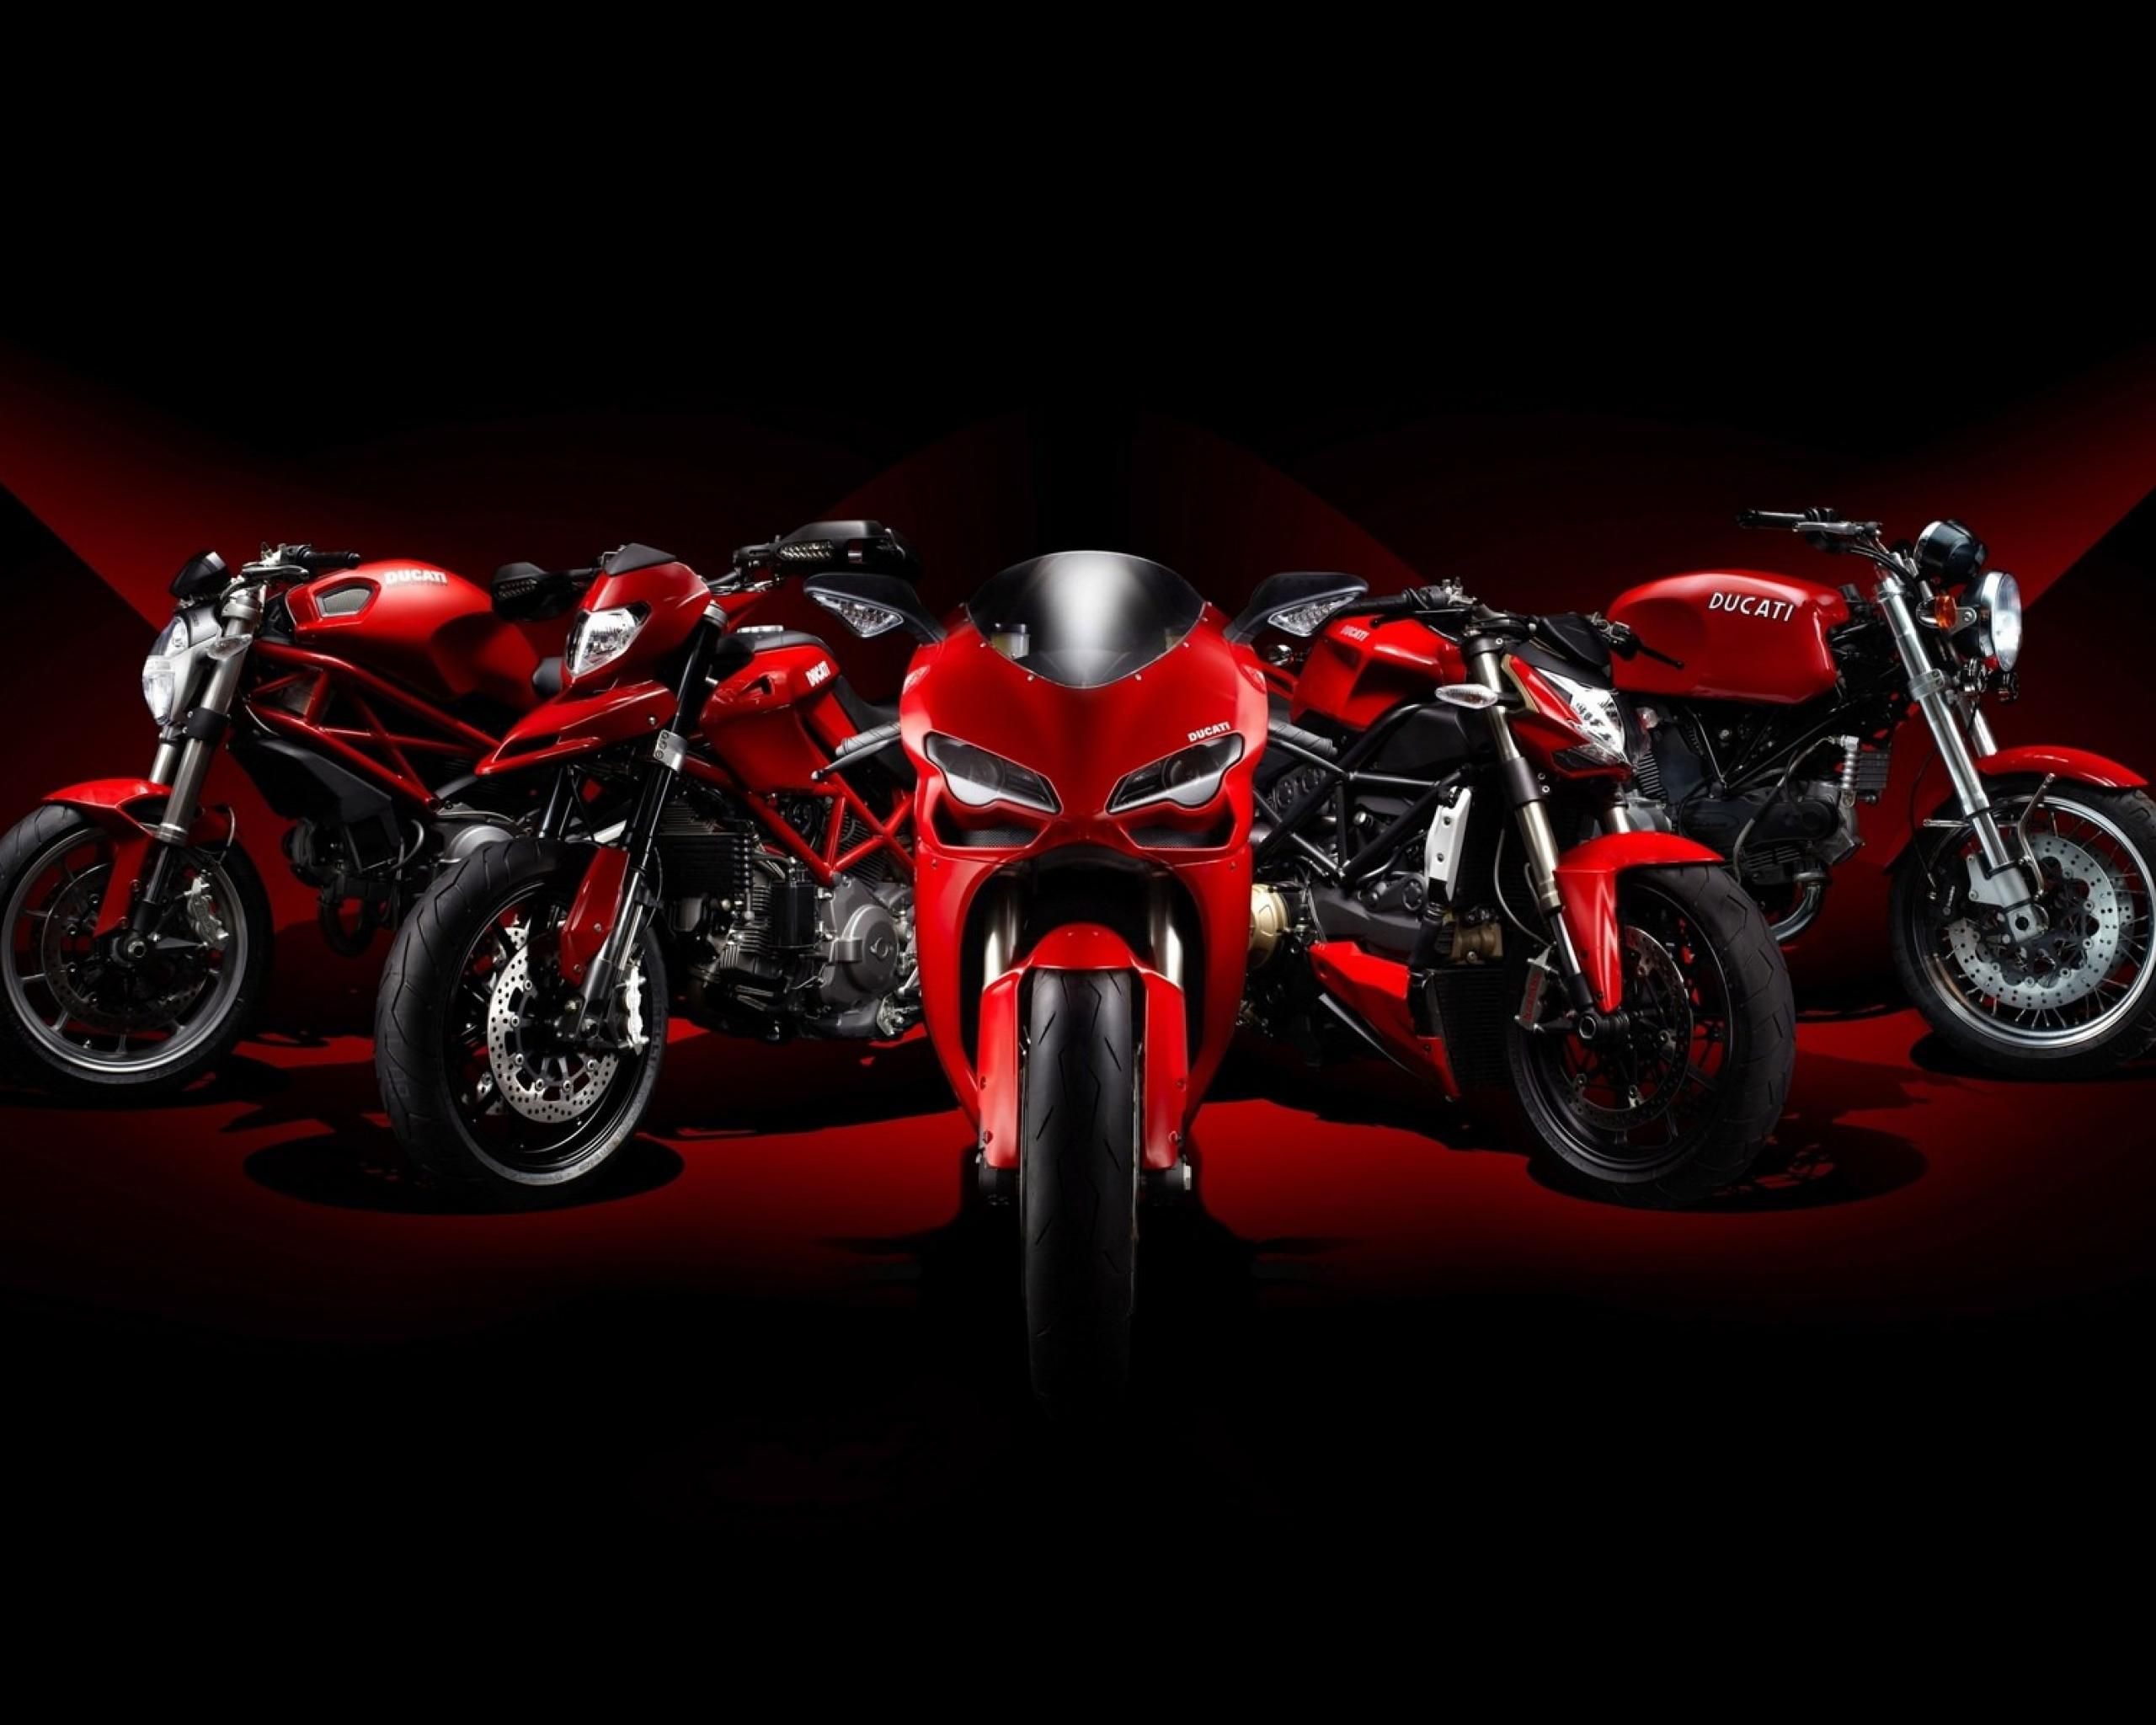 Motorcycle Wallpaper Wide Free Download Motorcycle Wallpaper Hd